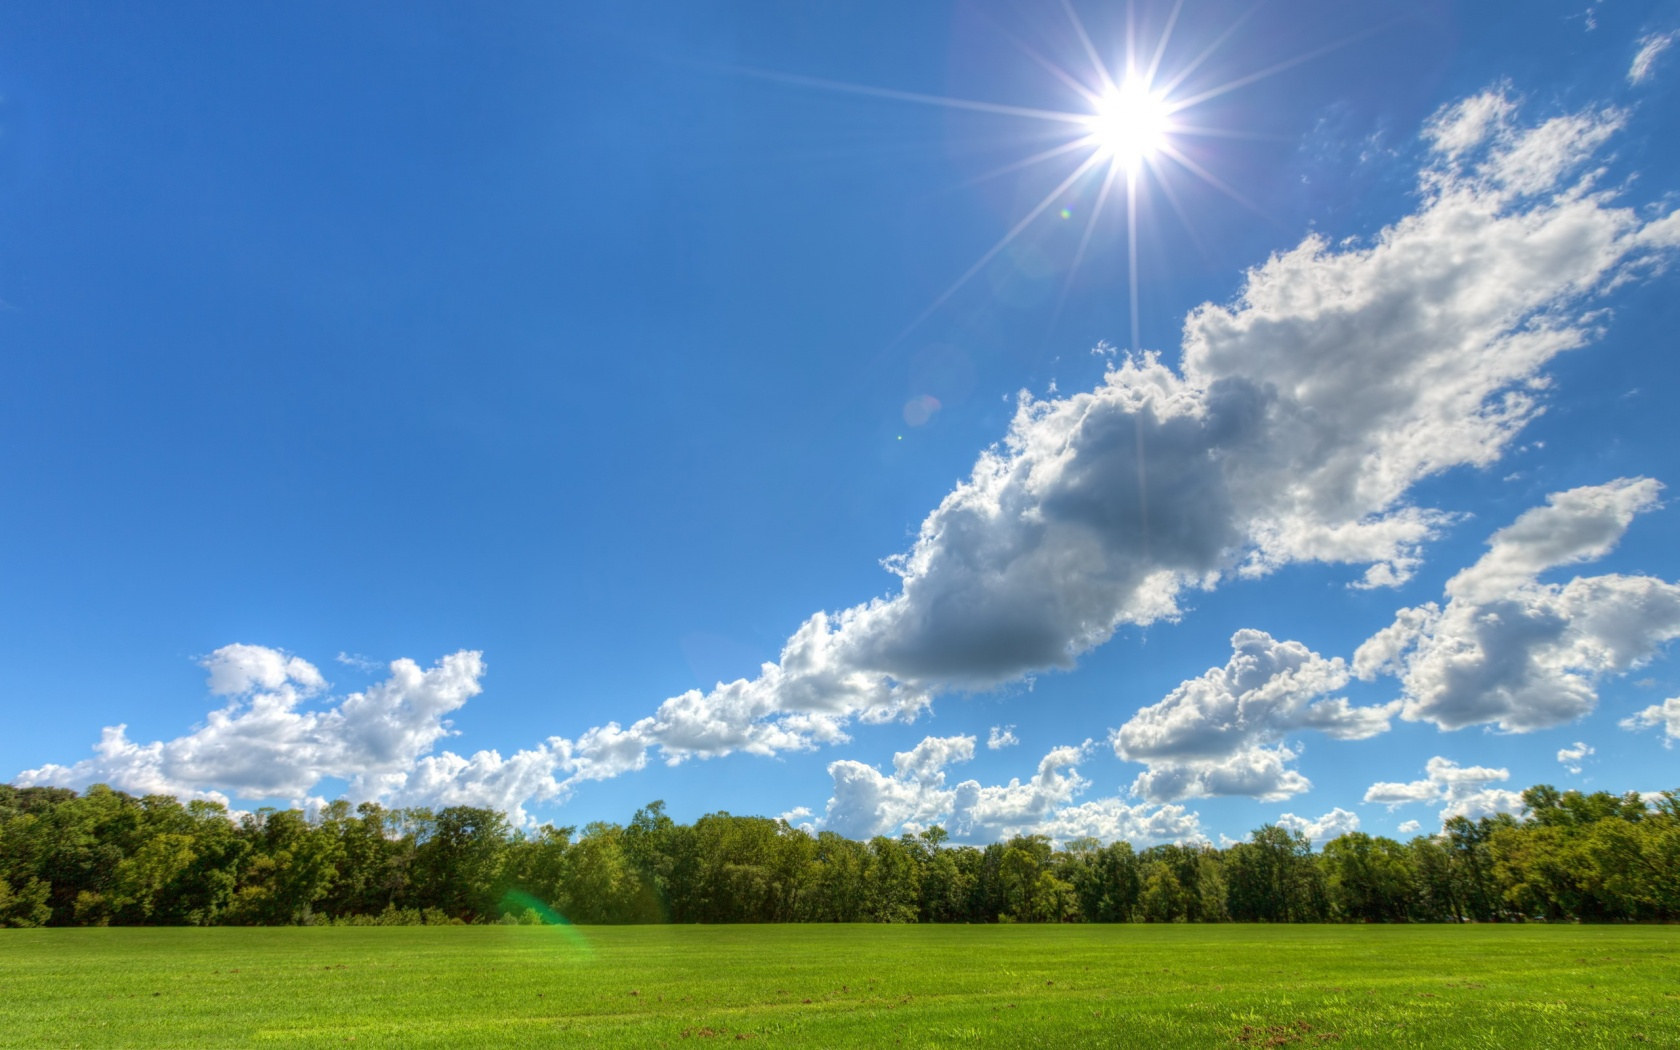 Awesome Sunny Day Wallpaper